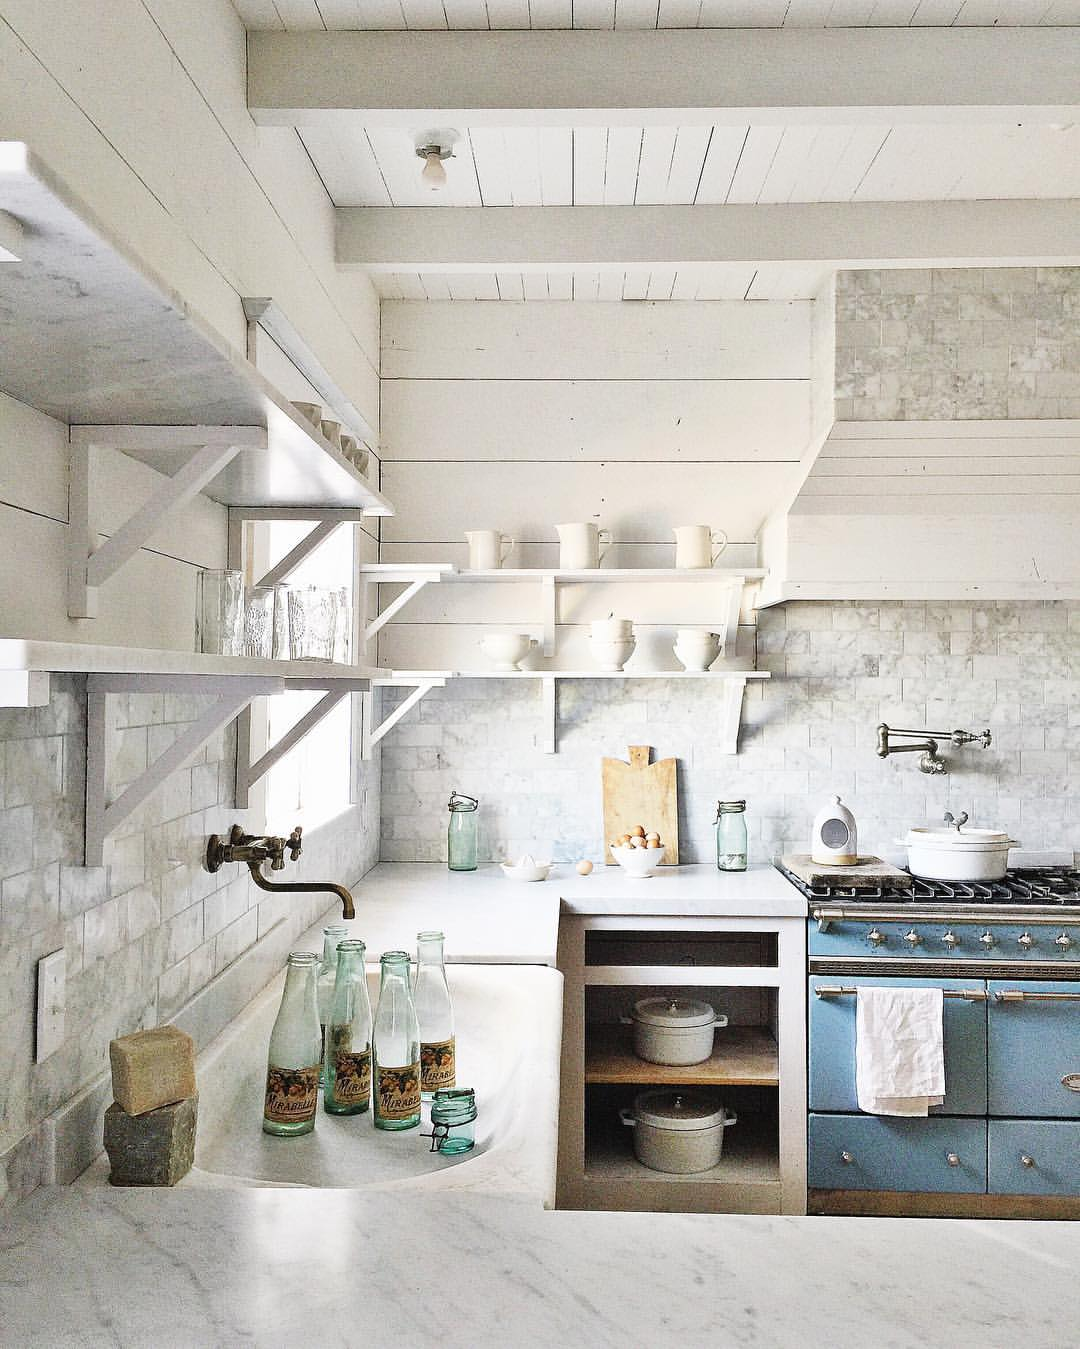 Blue and White Kitchen Decor Inspiration from the French farmhouse style kitchen of Dreamy Whites. Come see 36 Best Beautiful Blue and White Kitchens to Love! #blueandwhite #bluekitchen #kitchendesign #kitchendecor #decorinspiration #beautifulkitchen